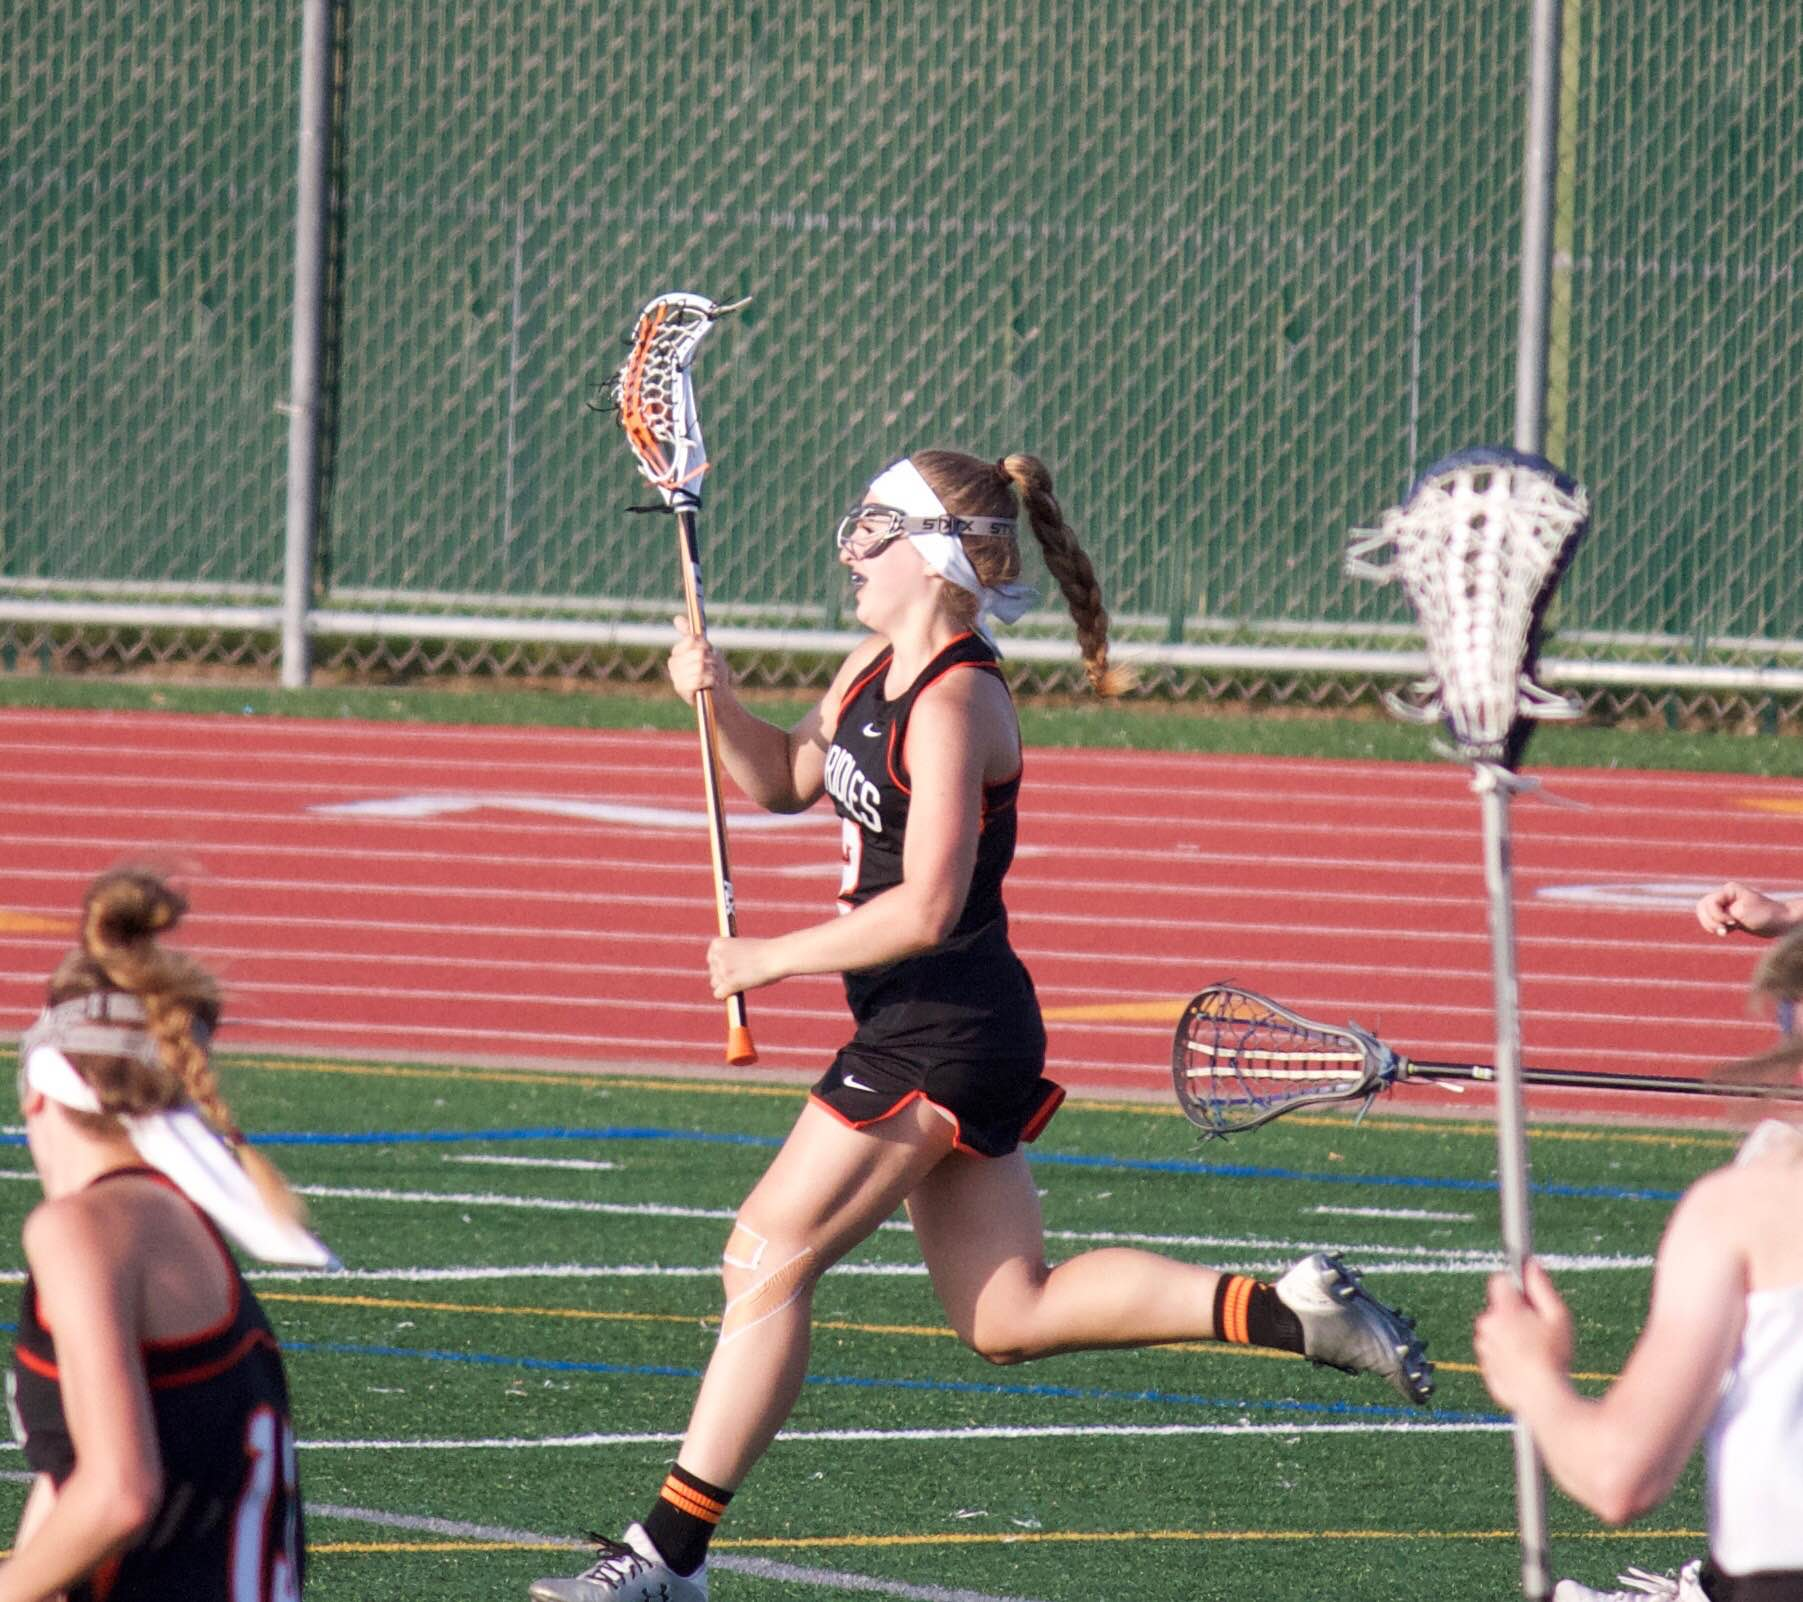 Junior Annie Van-Pilsum Johnson runs on the attack in the offensive zone during a lacrosse game. Van-Pilsum Johnson plays lacrosse and lifts weights in her time off nordic in order to stay in shape.